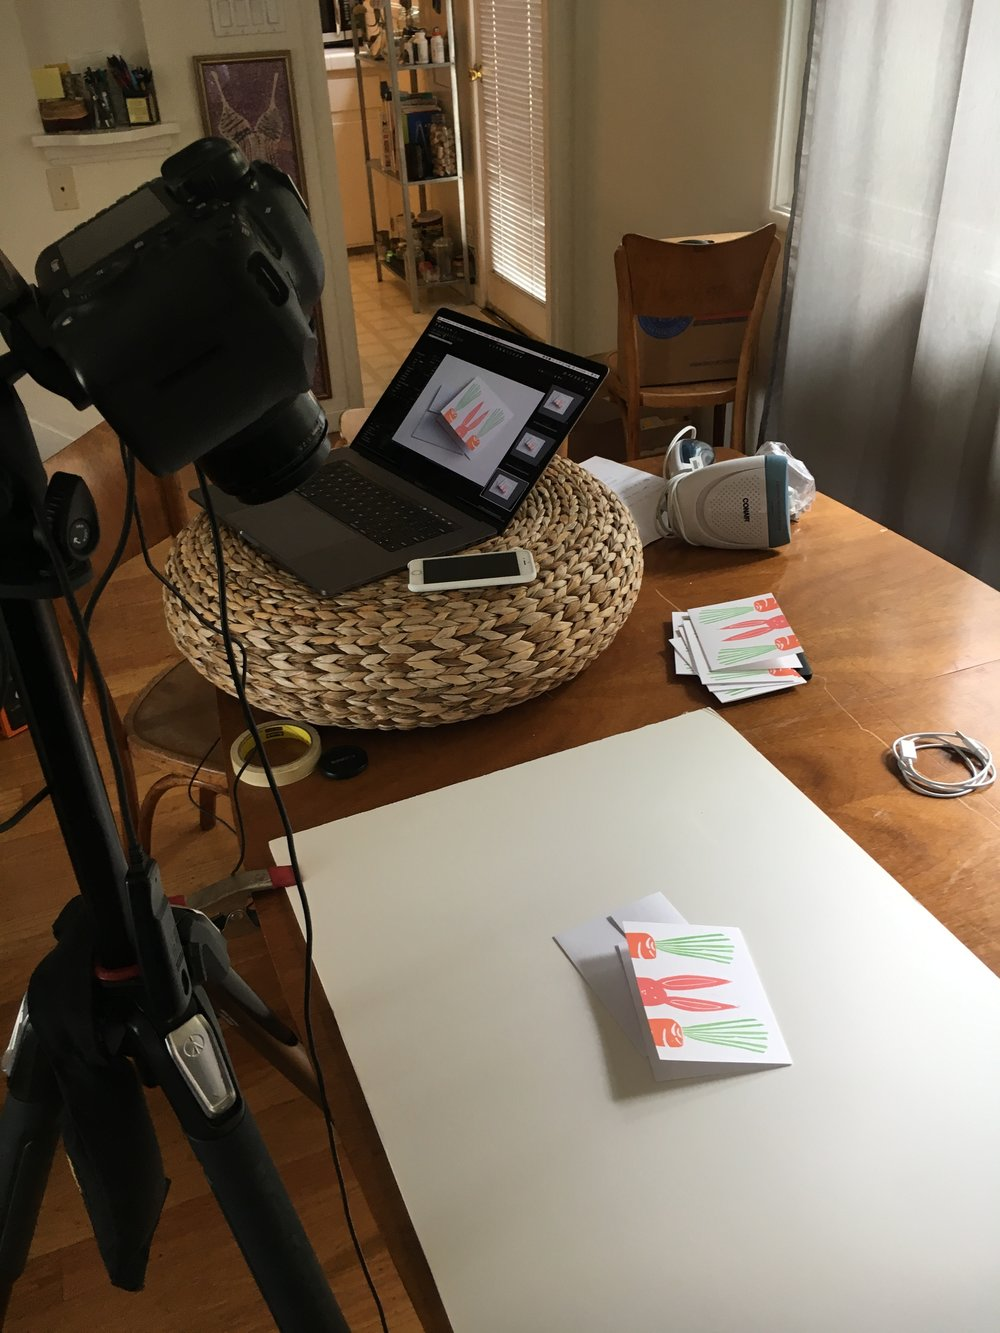 The dining room table studio